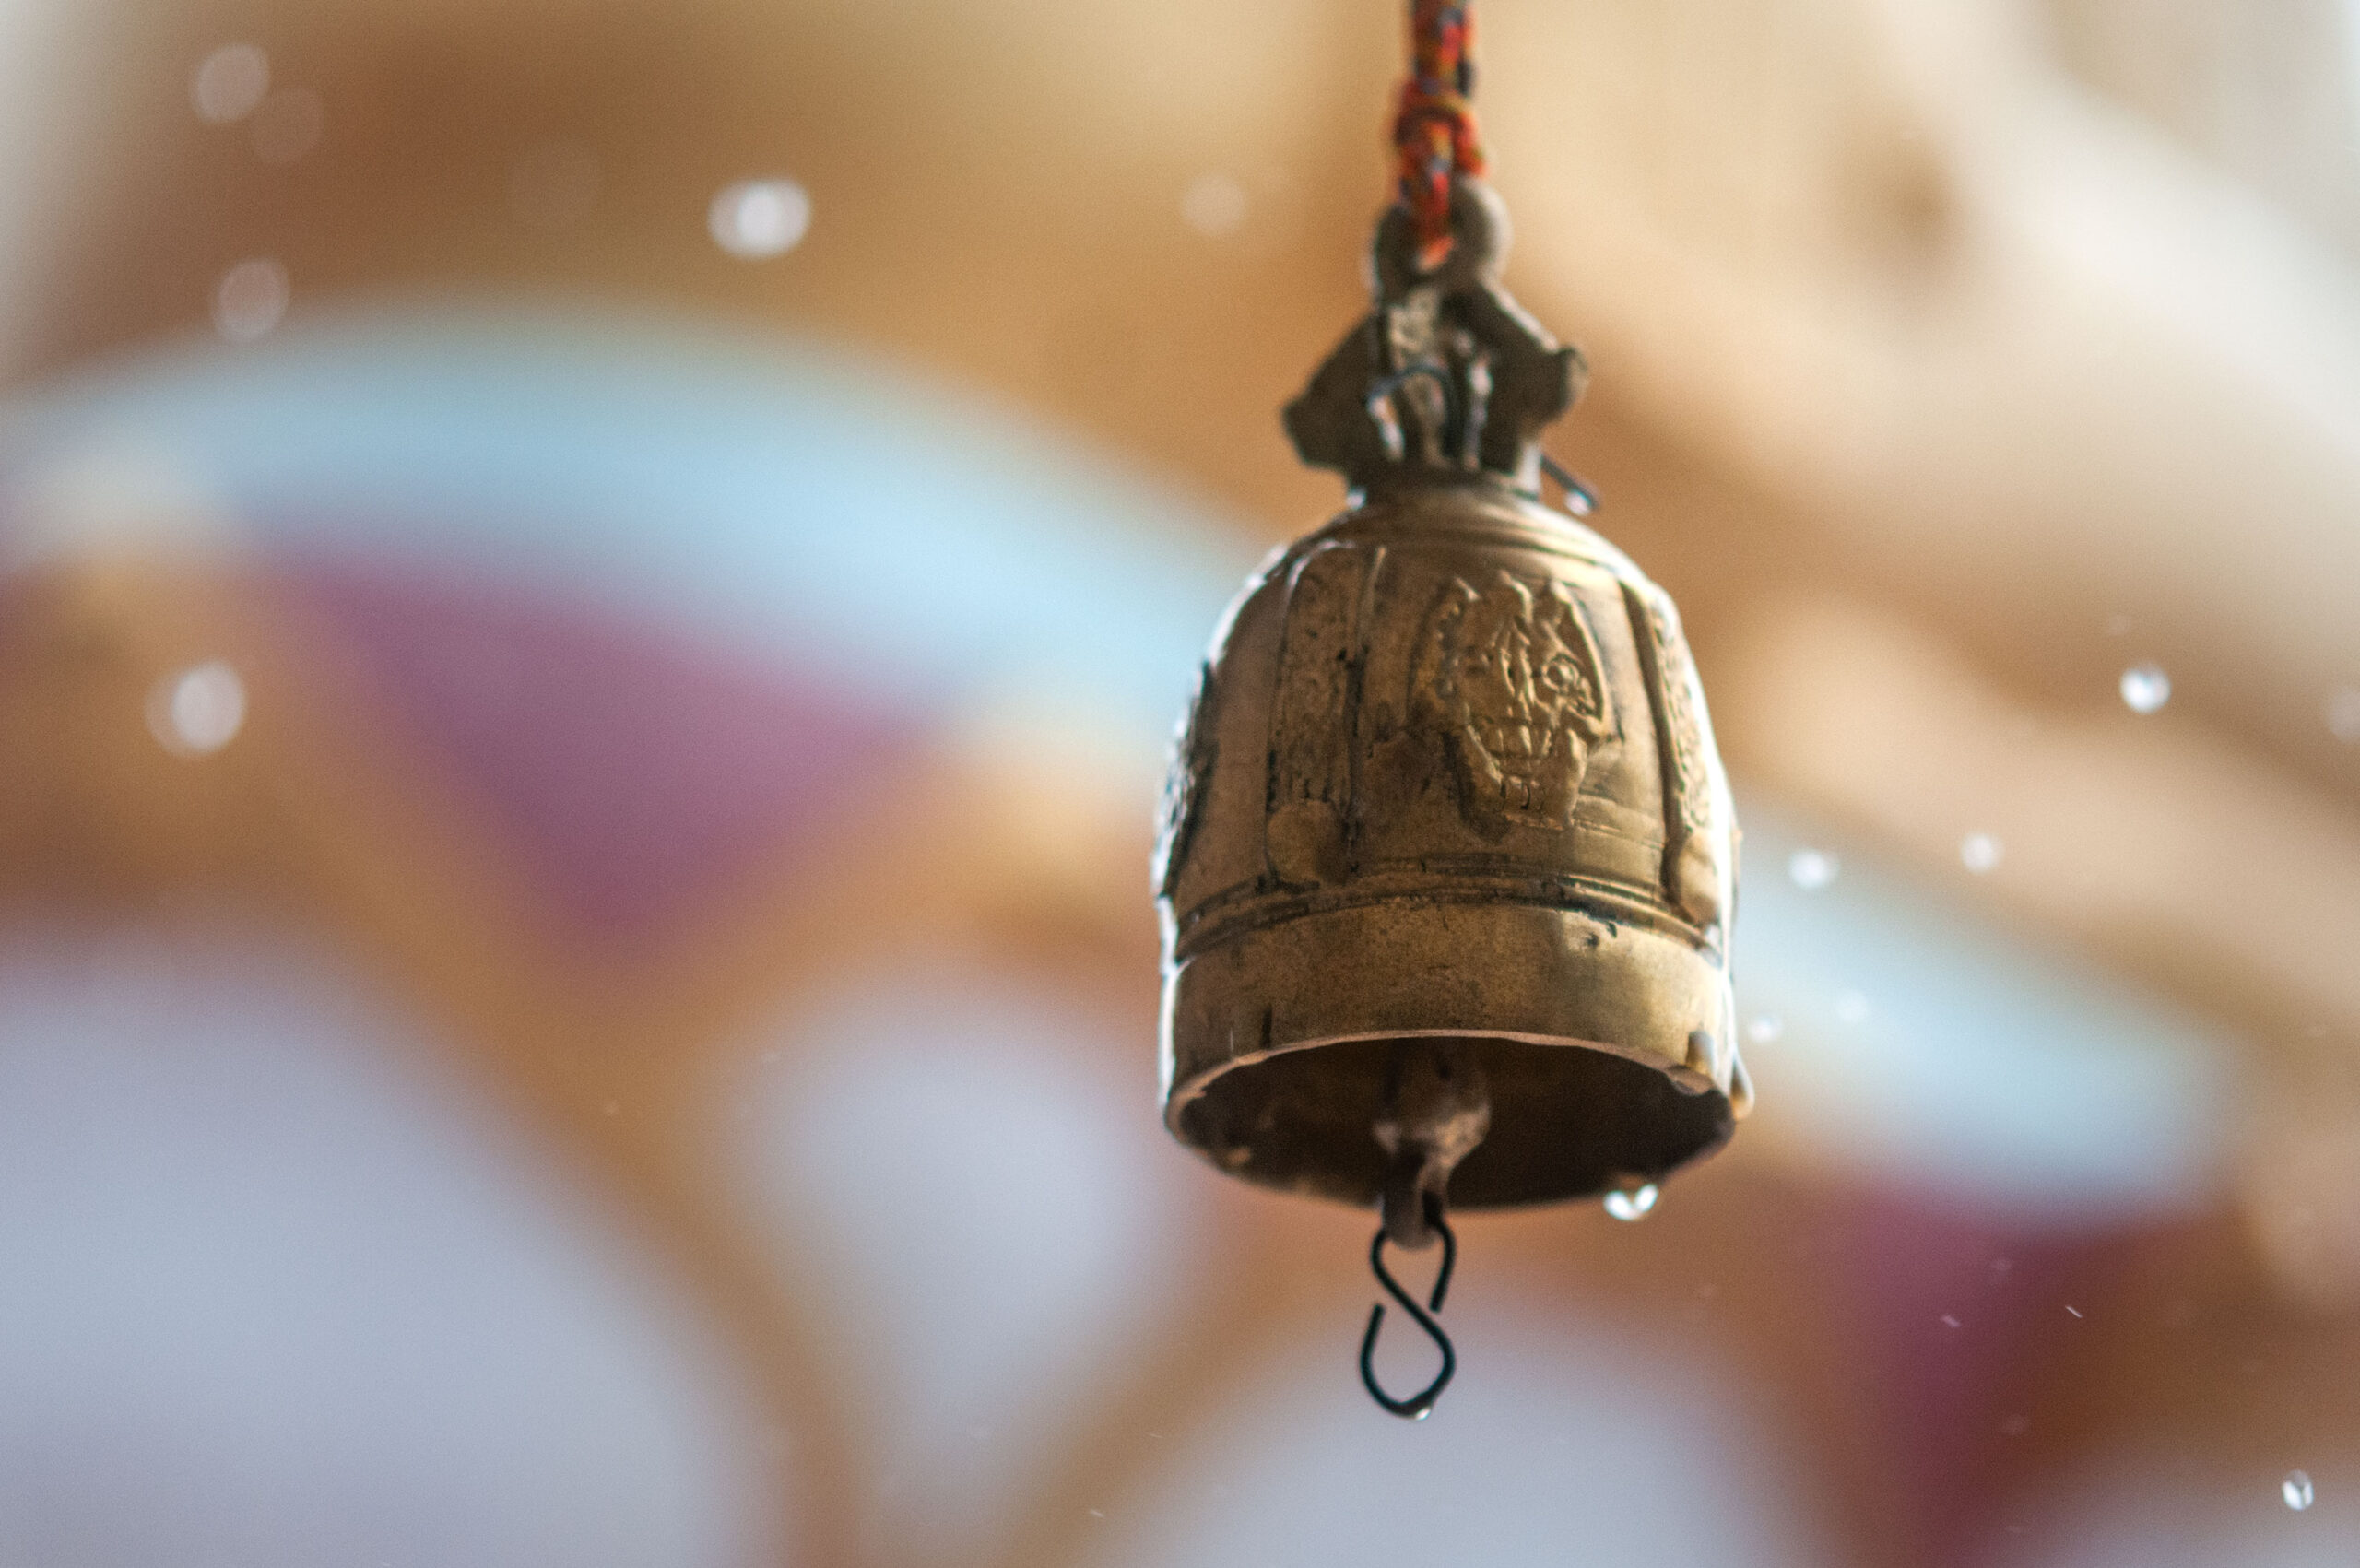 Close-up photography of a temple bell under the rain in Koh Samui, Thailand.